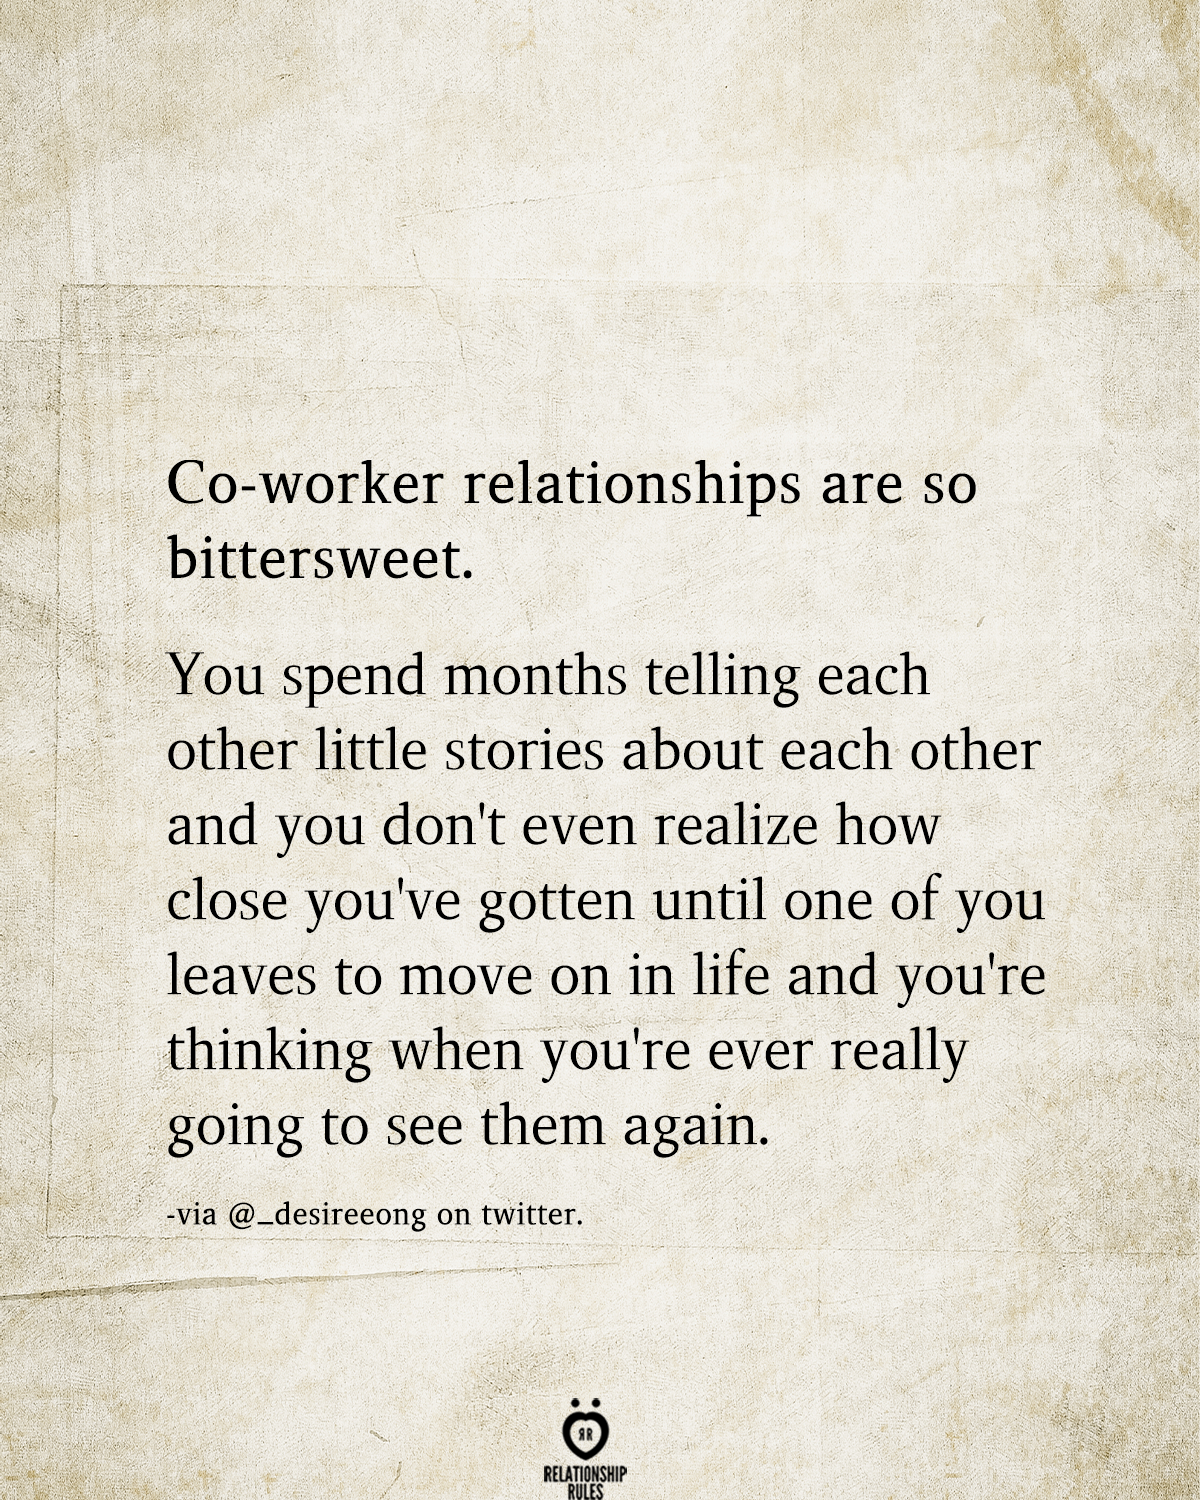 5 Relationship Rules to Rekindle Your Passion  Coworker quotes